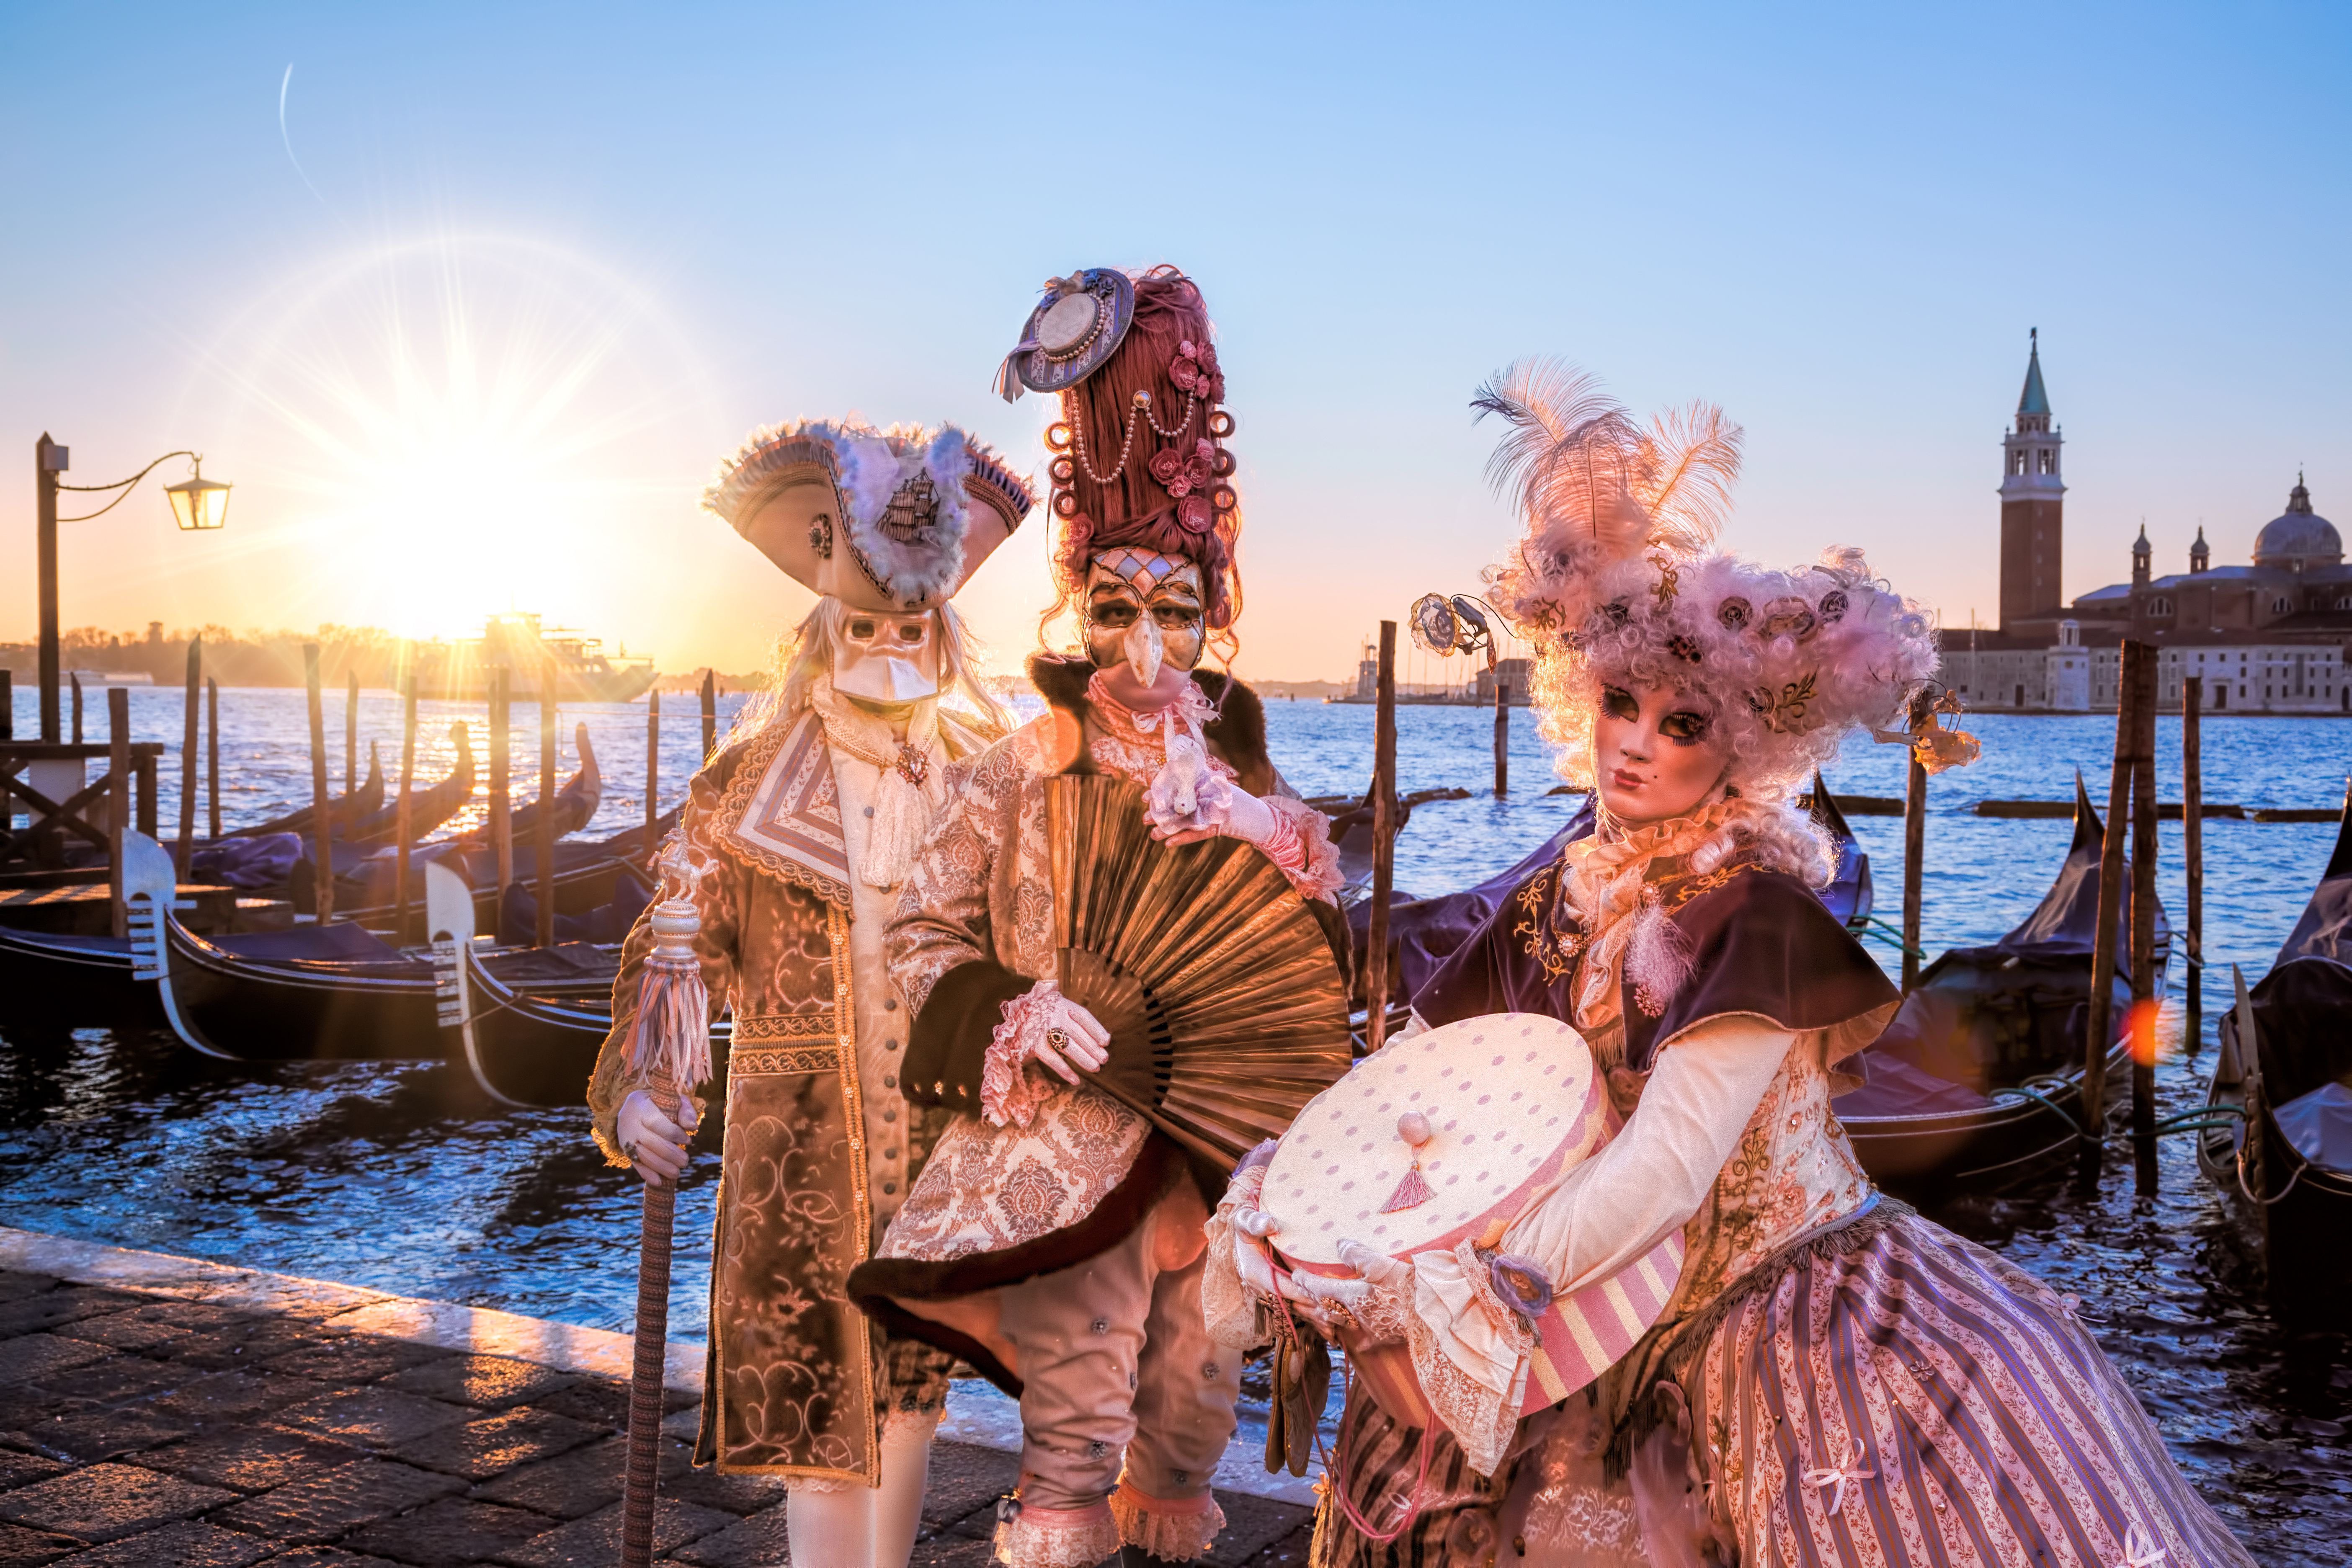 Masked revellers at Venice Carnival.